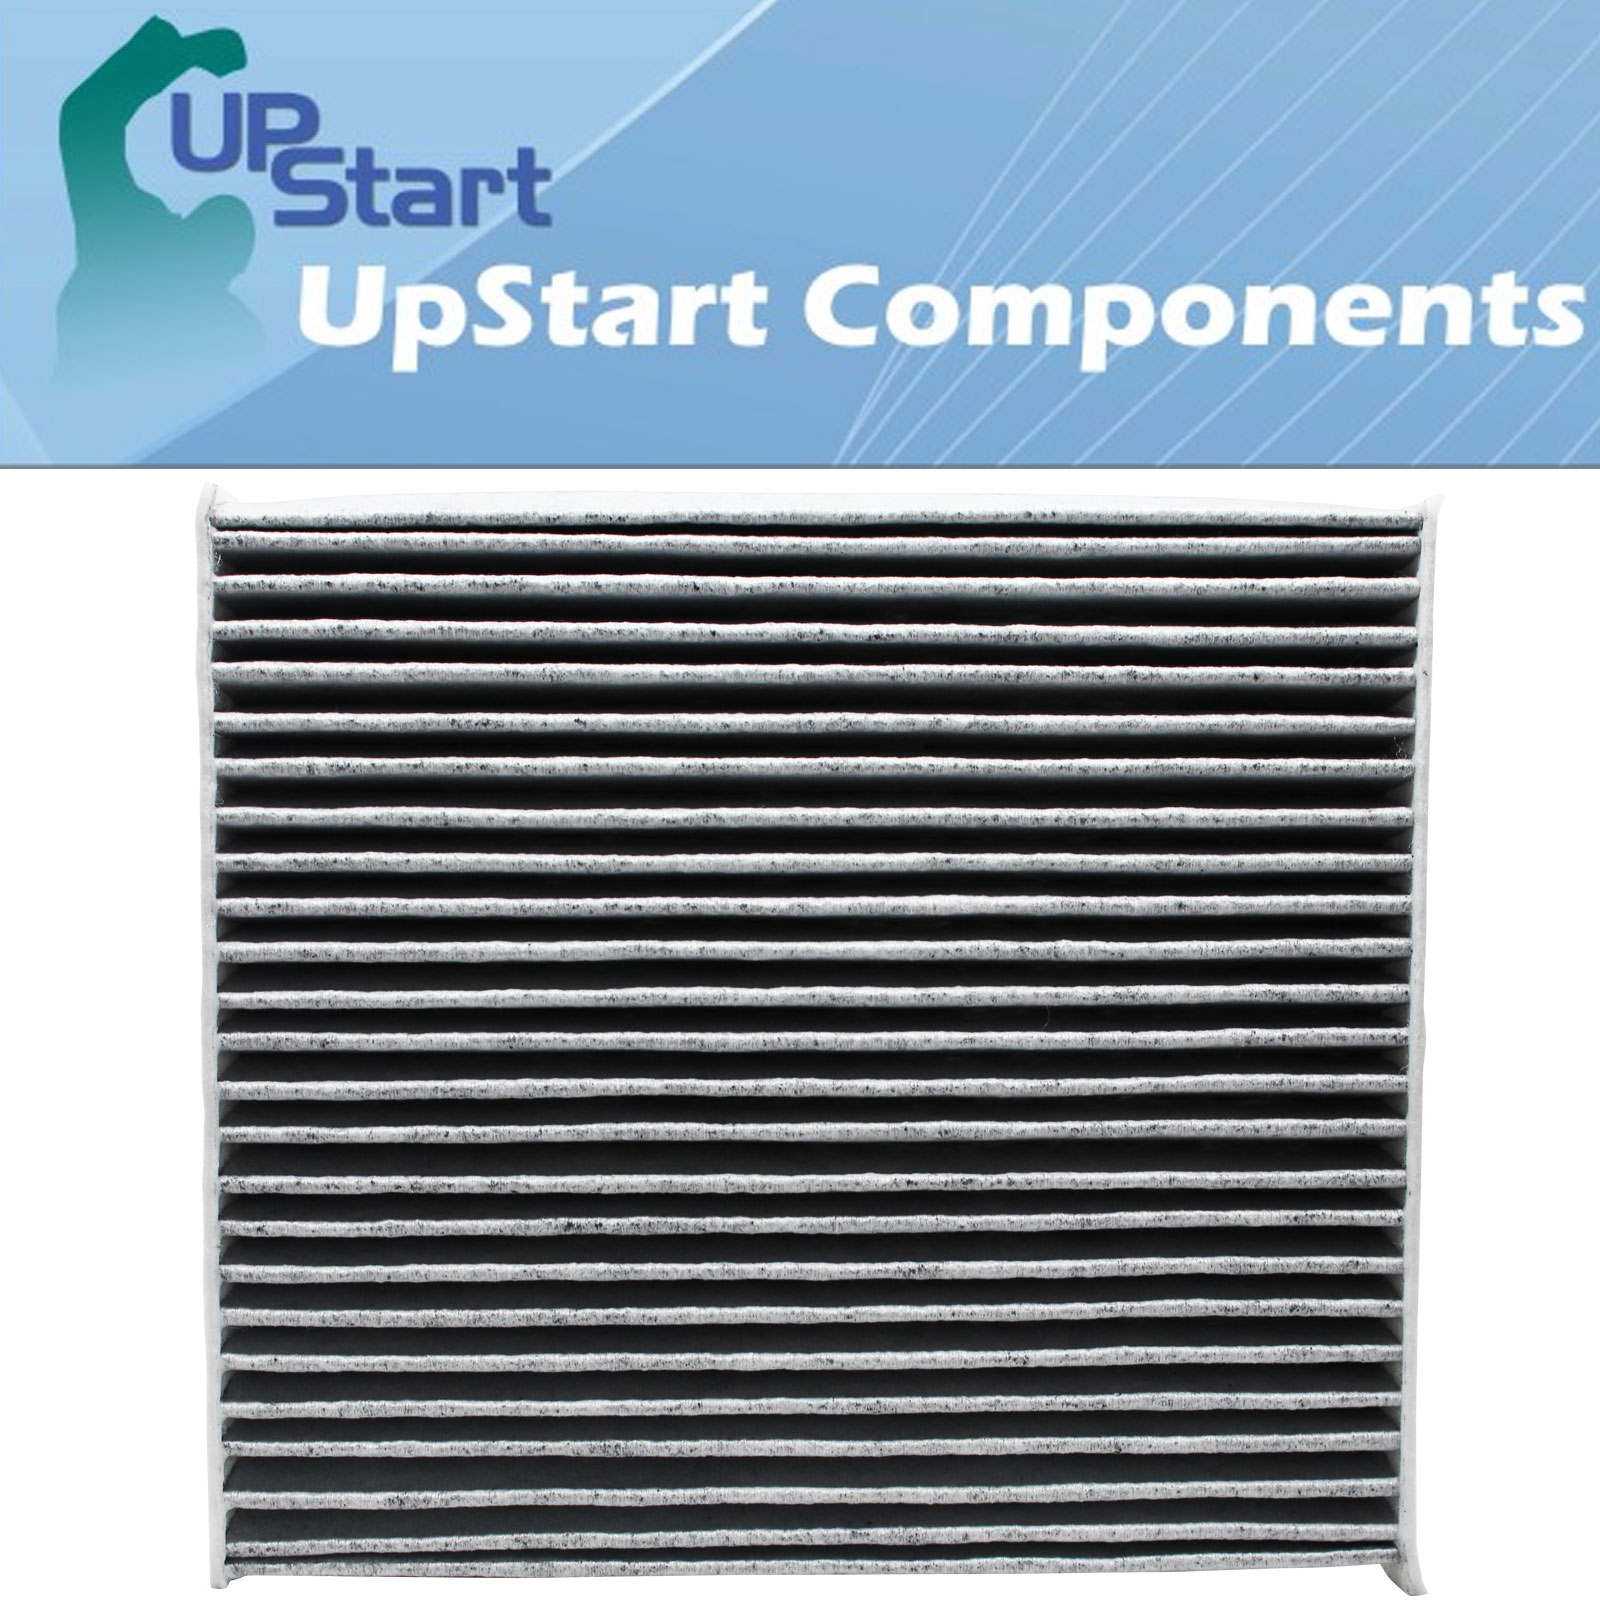 4-Pack Replacement Cabin Air Filter for 2015 Toyota SIENNA V6 3.5L 3456cc Car/Automotive - Activated Carbon, ACF-10285